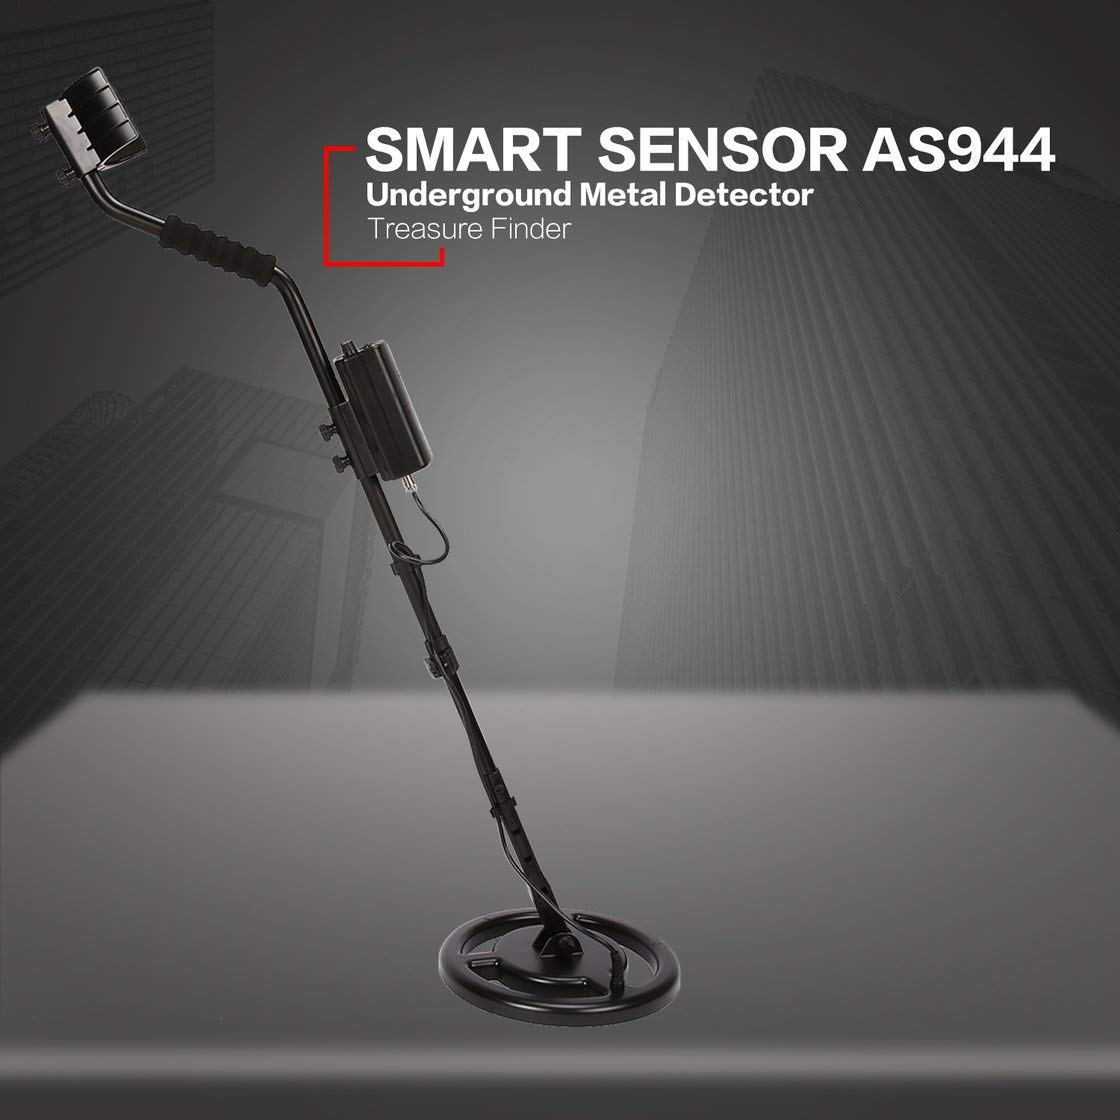 SMART SENSOR AS944 Detector de metales subterráneo profesional Buscador de plata dorado ajustable Treasure Hunter Tracker Profundidad 3m: Amazon.es: ...